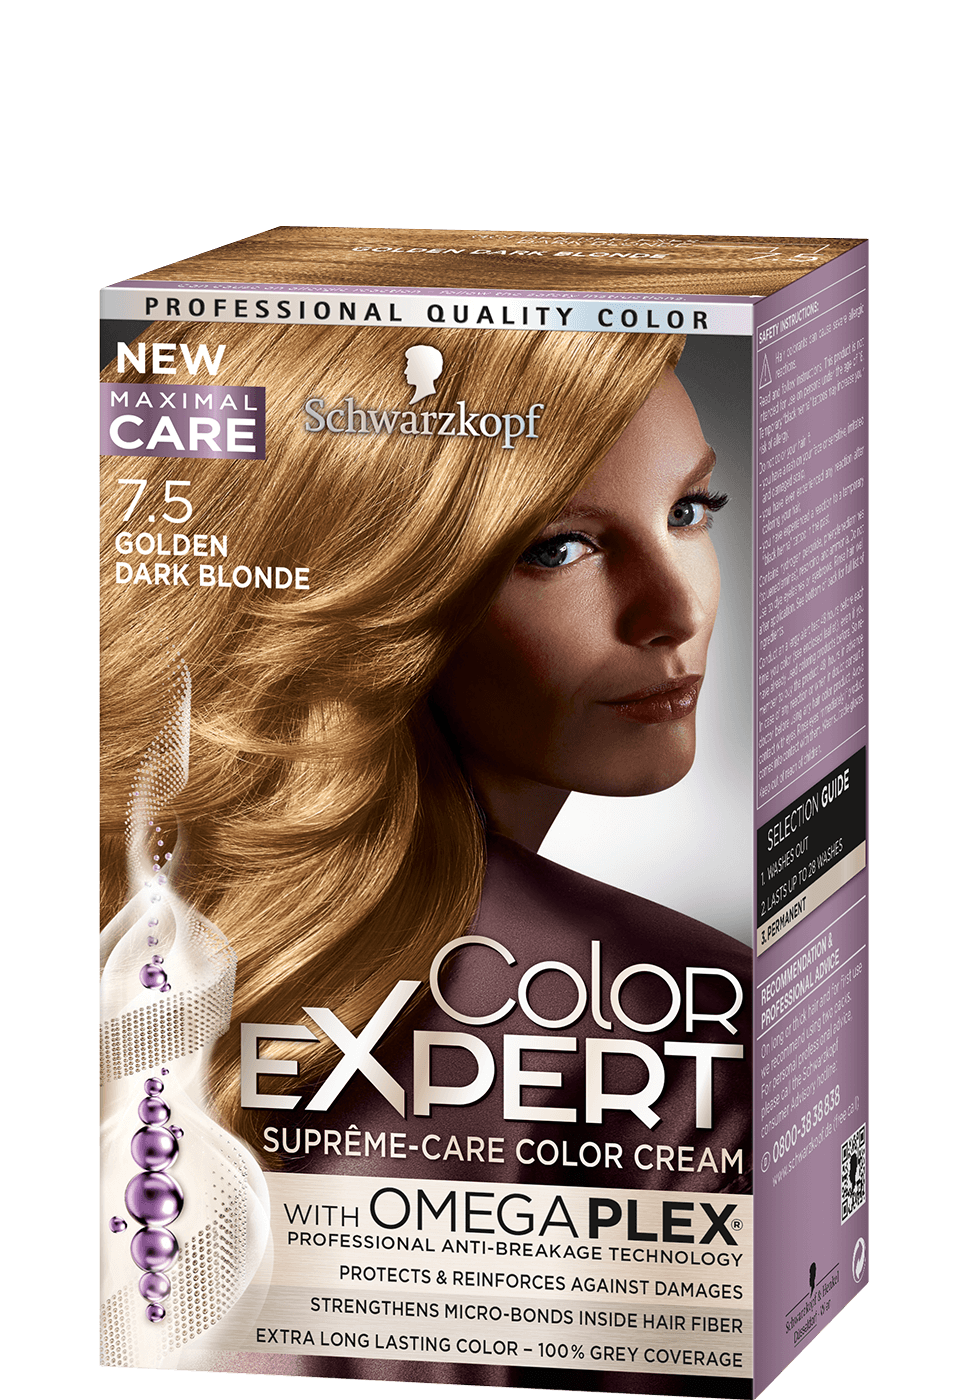 Color Expert Color Creme 7-5 Golden Dark Blonde